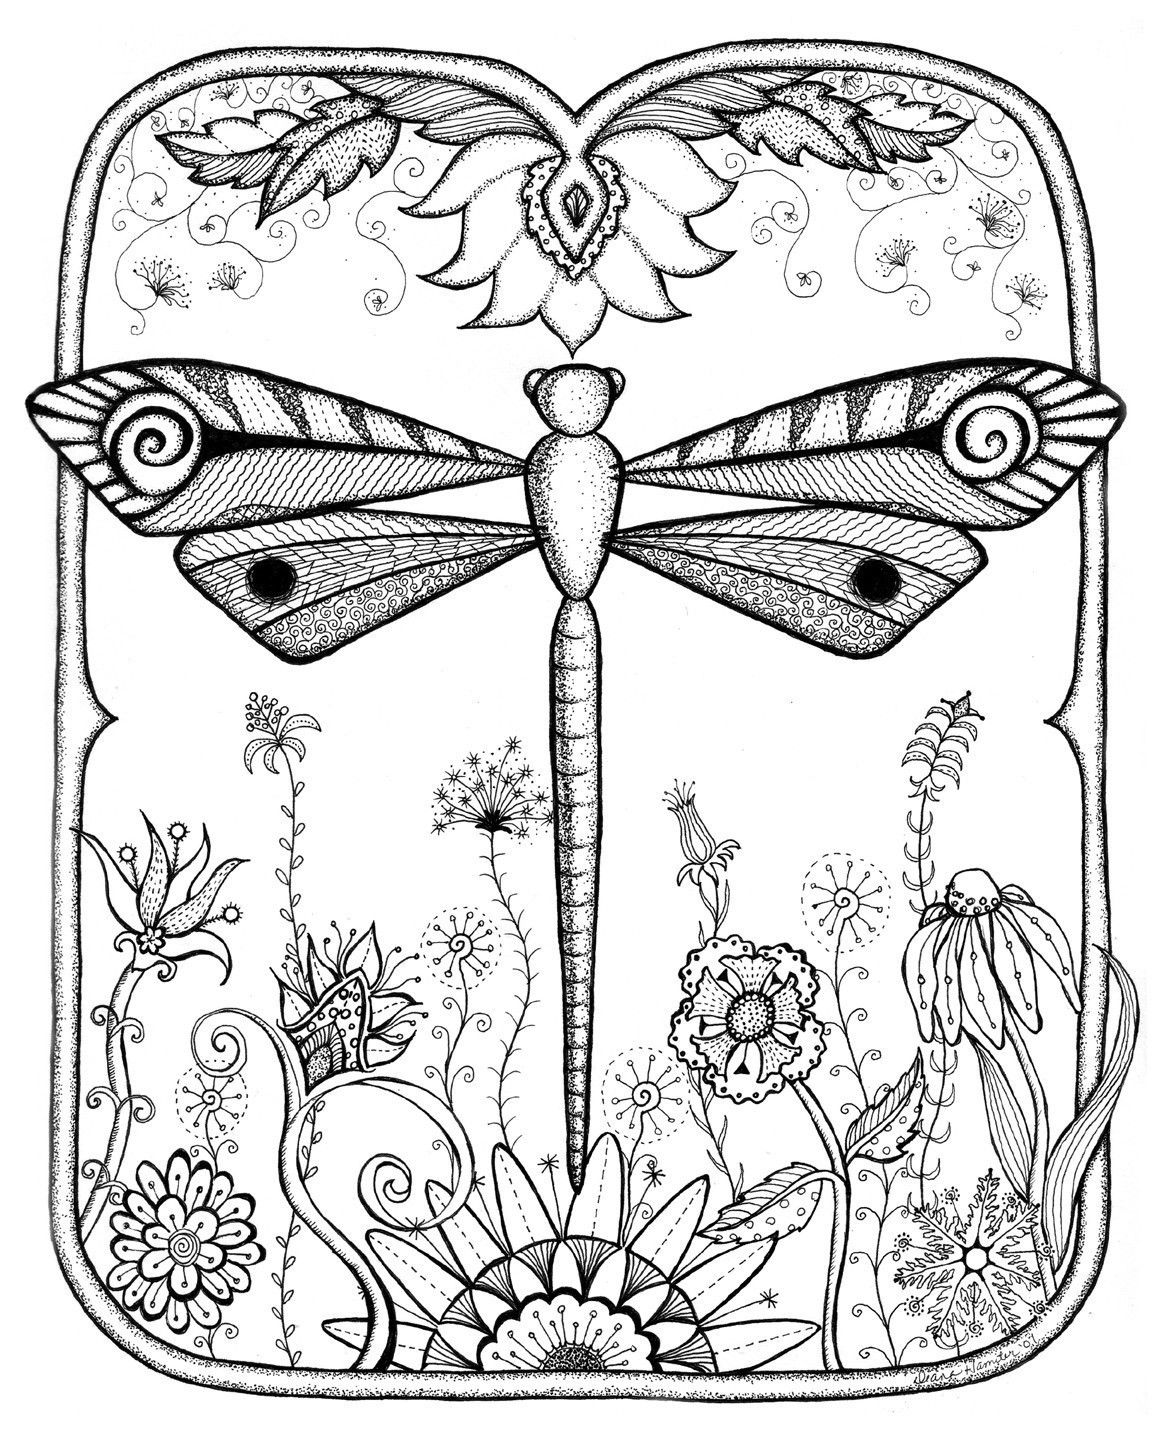 Dragonfly Garden Abstract Doodle Zentangle Zendoodle Paisley Coloring Pages Colouring Adult Detailed Advanced Printable Kleu Coloring Pages Zentangle Dragonfly